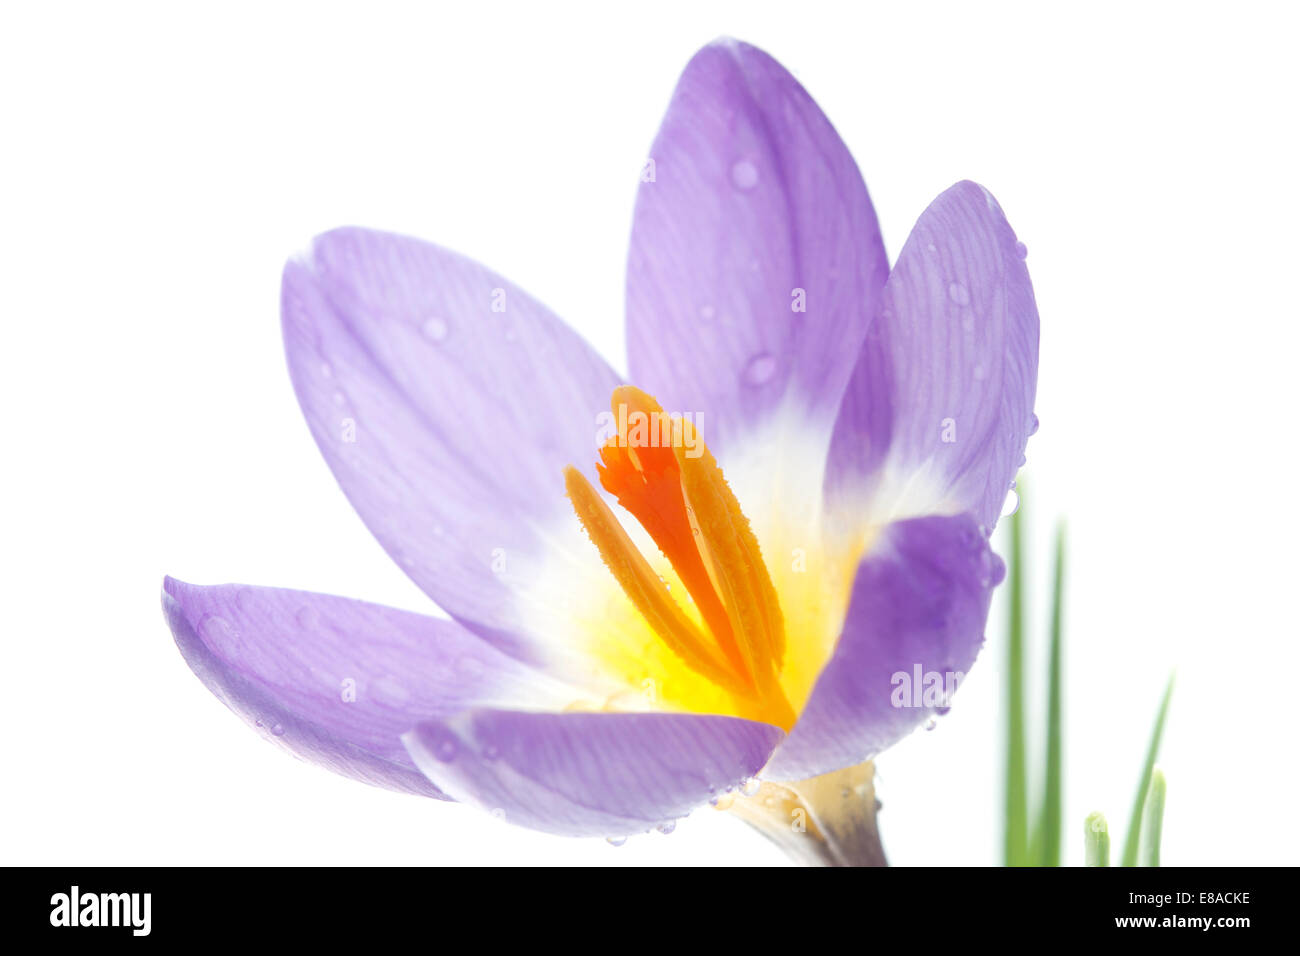 Flower Crocus Tricolor in the Iris family - Stock Image